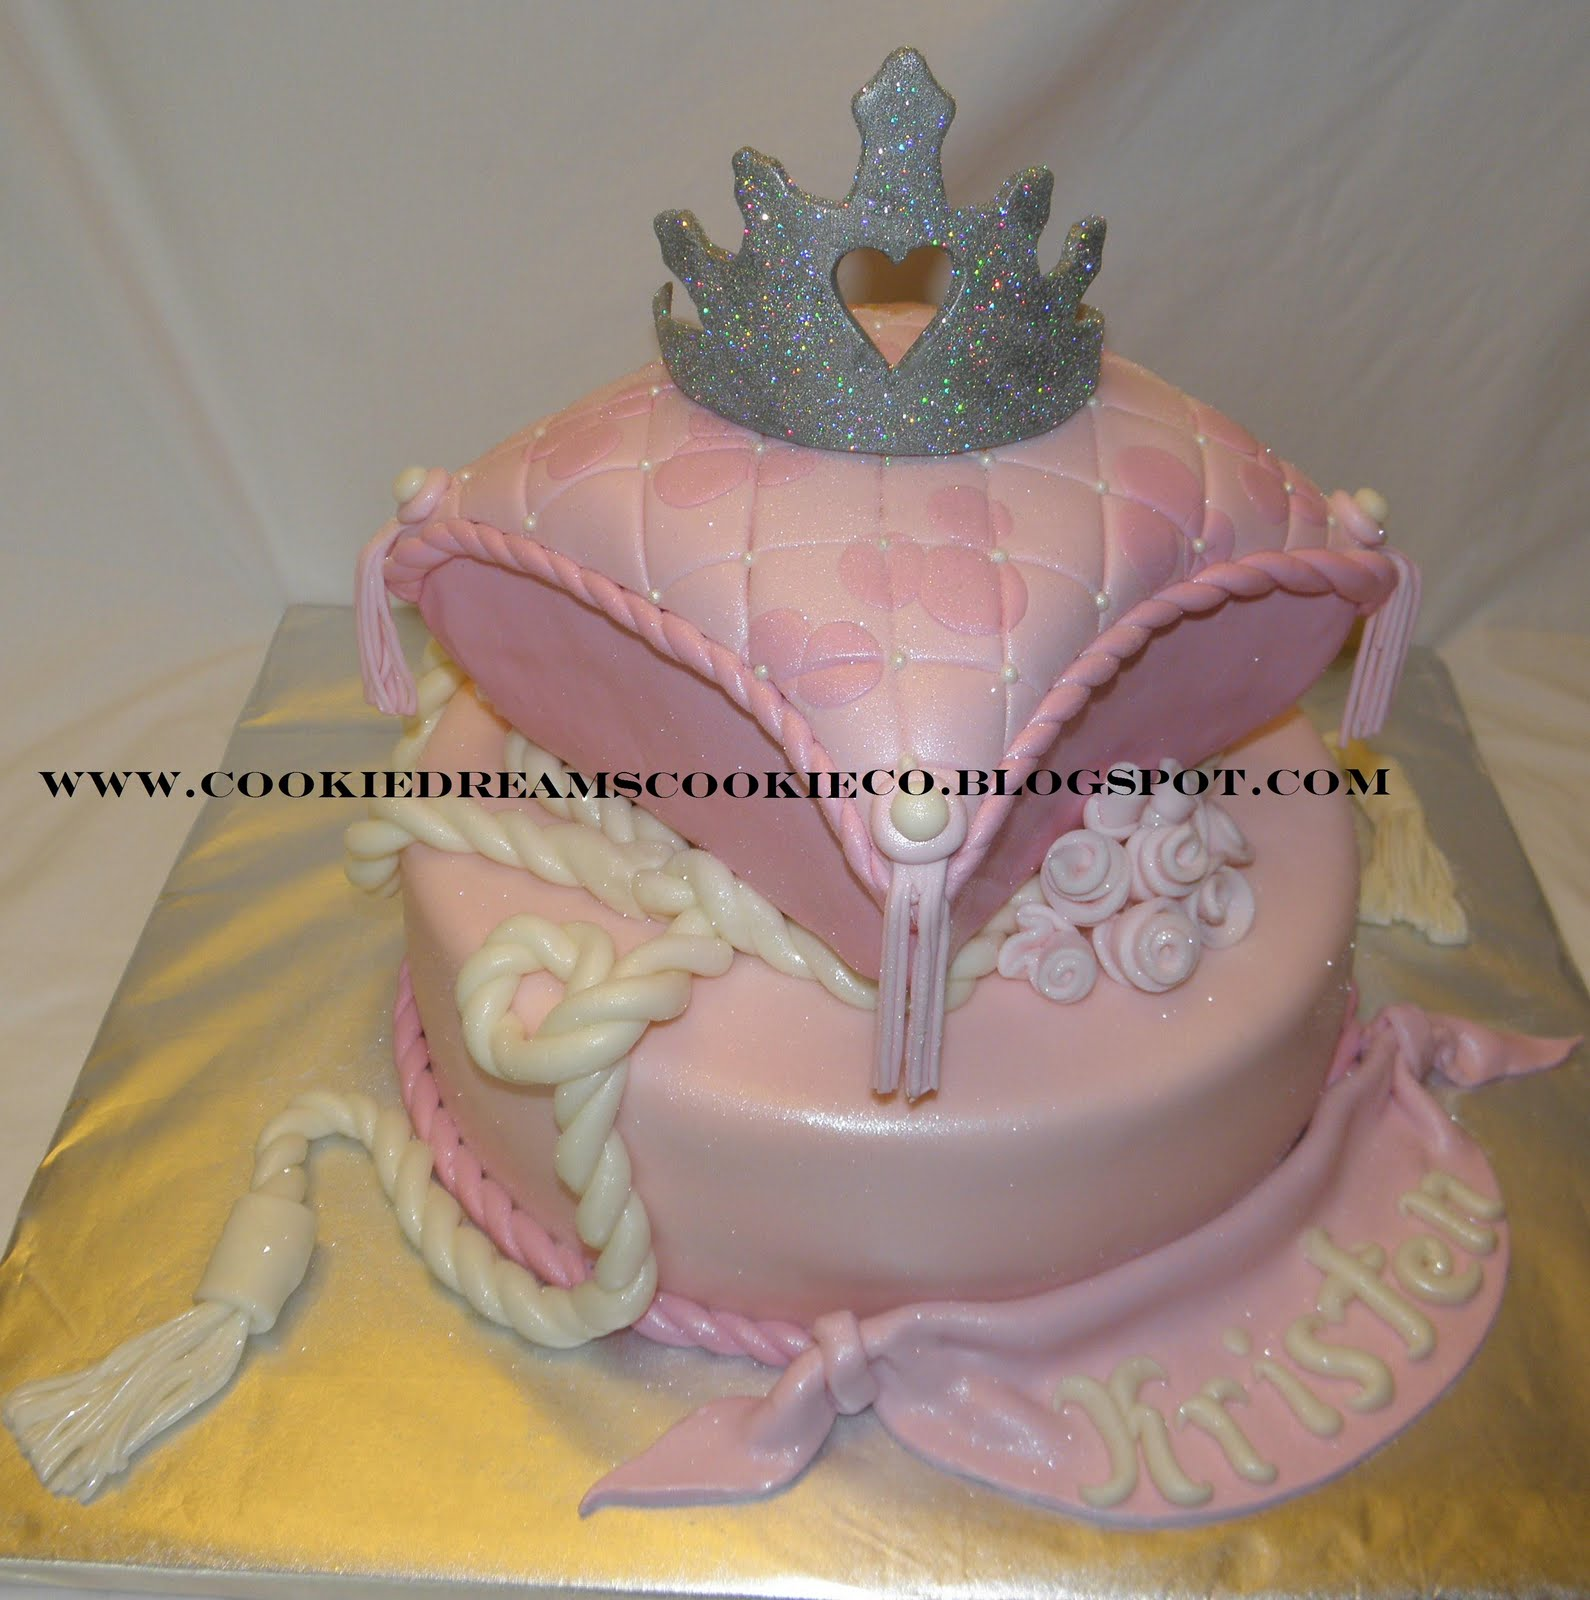 Princess Pillow Cake Images : Cookie Dreams Cookie Co.: Princess Pillow Cake!